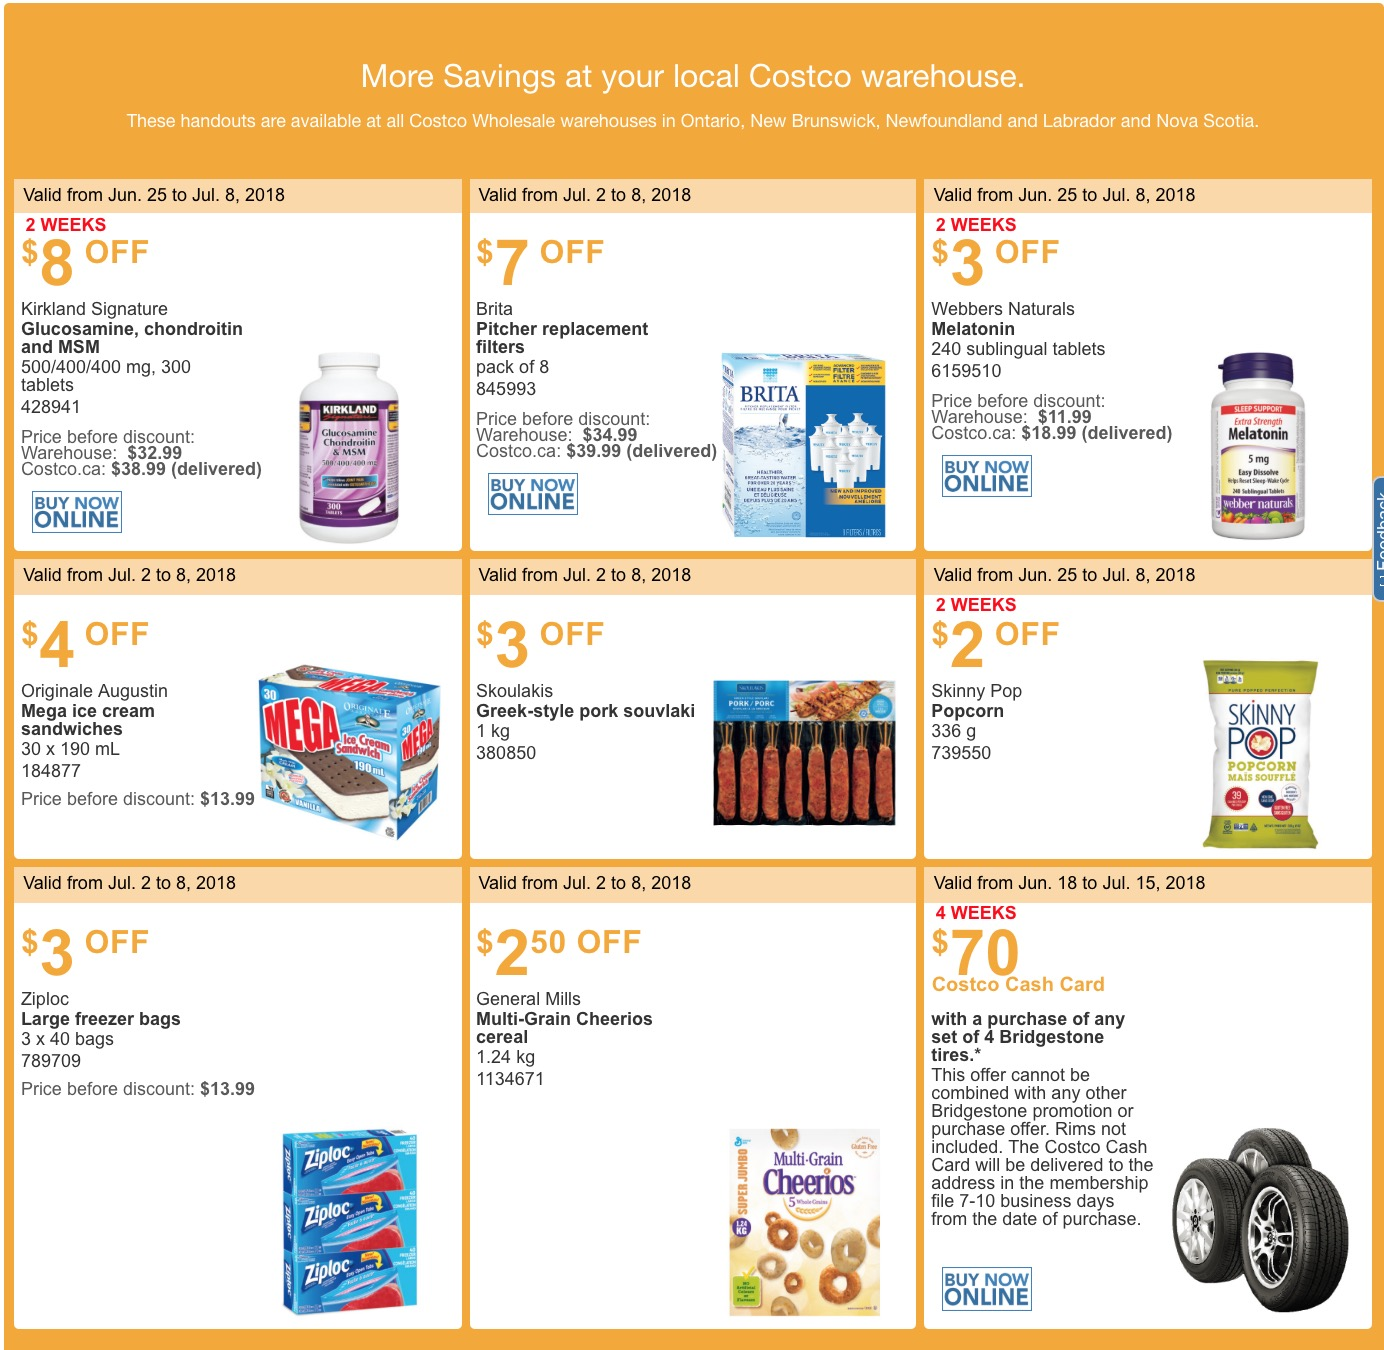 4dc9a96669 Costco Canada has now released the new eastern weekly instant discount  handouts! These handouts are available at all Costco Wholesale warehouses  in Ontario